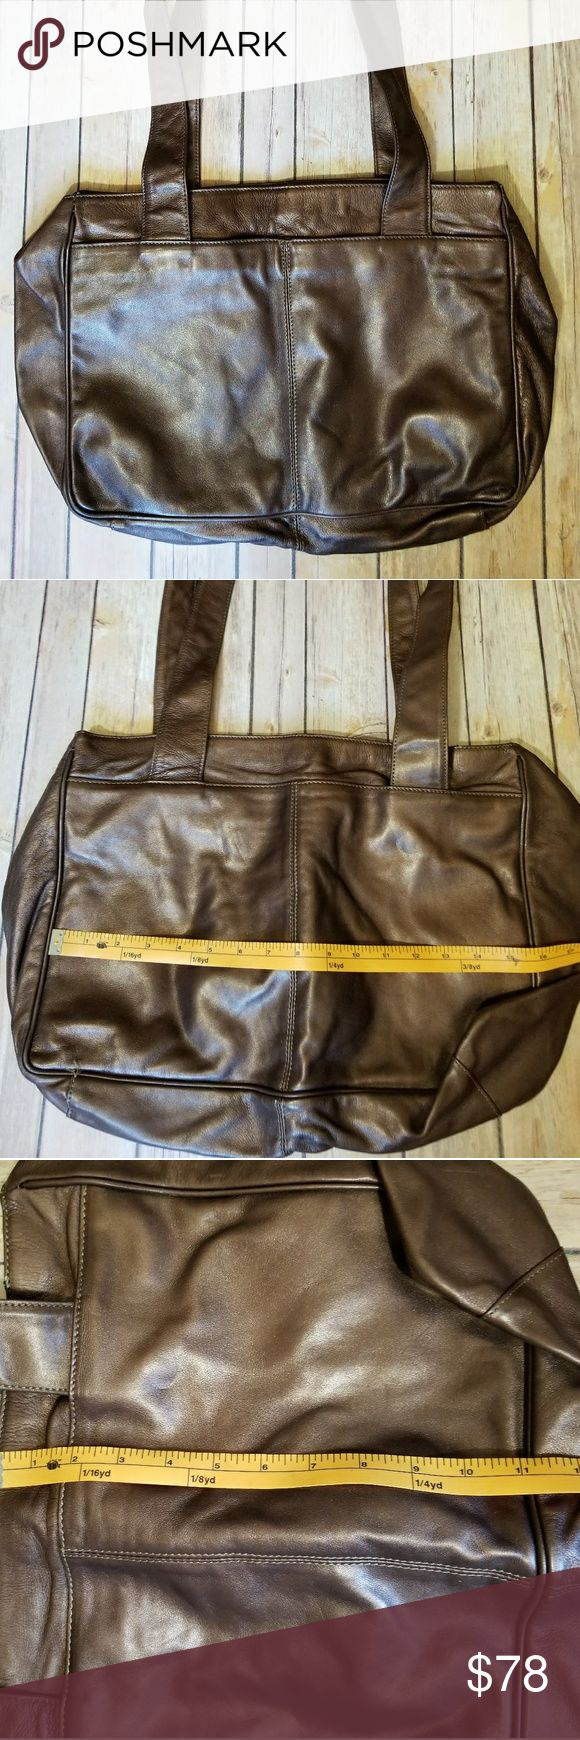 FRANCESCO BIASIA metallic brown leather tote Large bronze/ metallic brown leather tote bag. Snap closure with large zipper compartment within. Great basic neutral tote. Super soft leather. Great condition Francesco Biasia Bags Totes